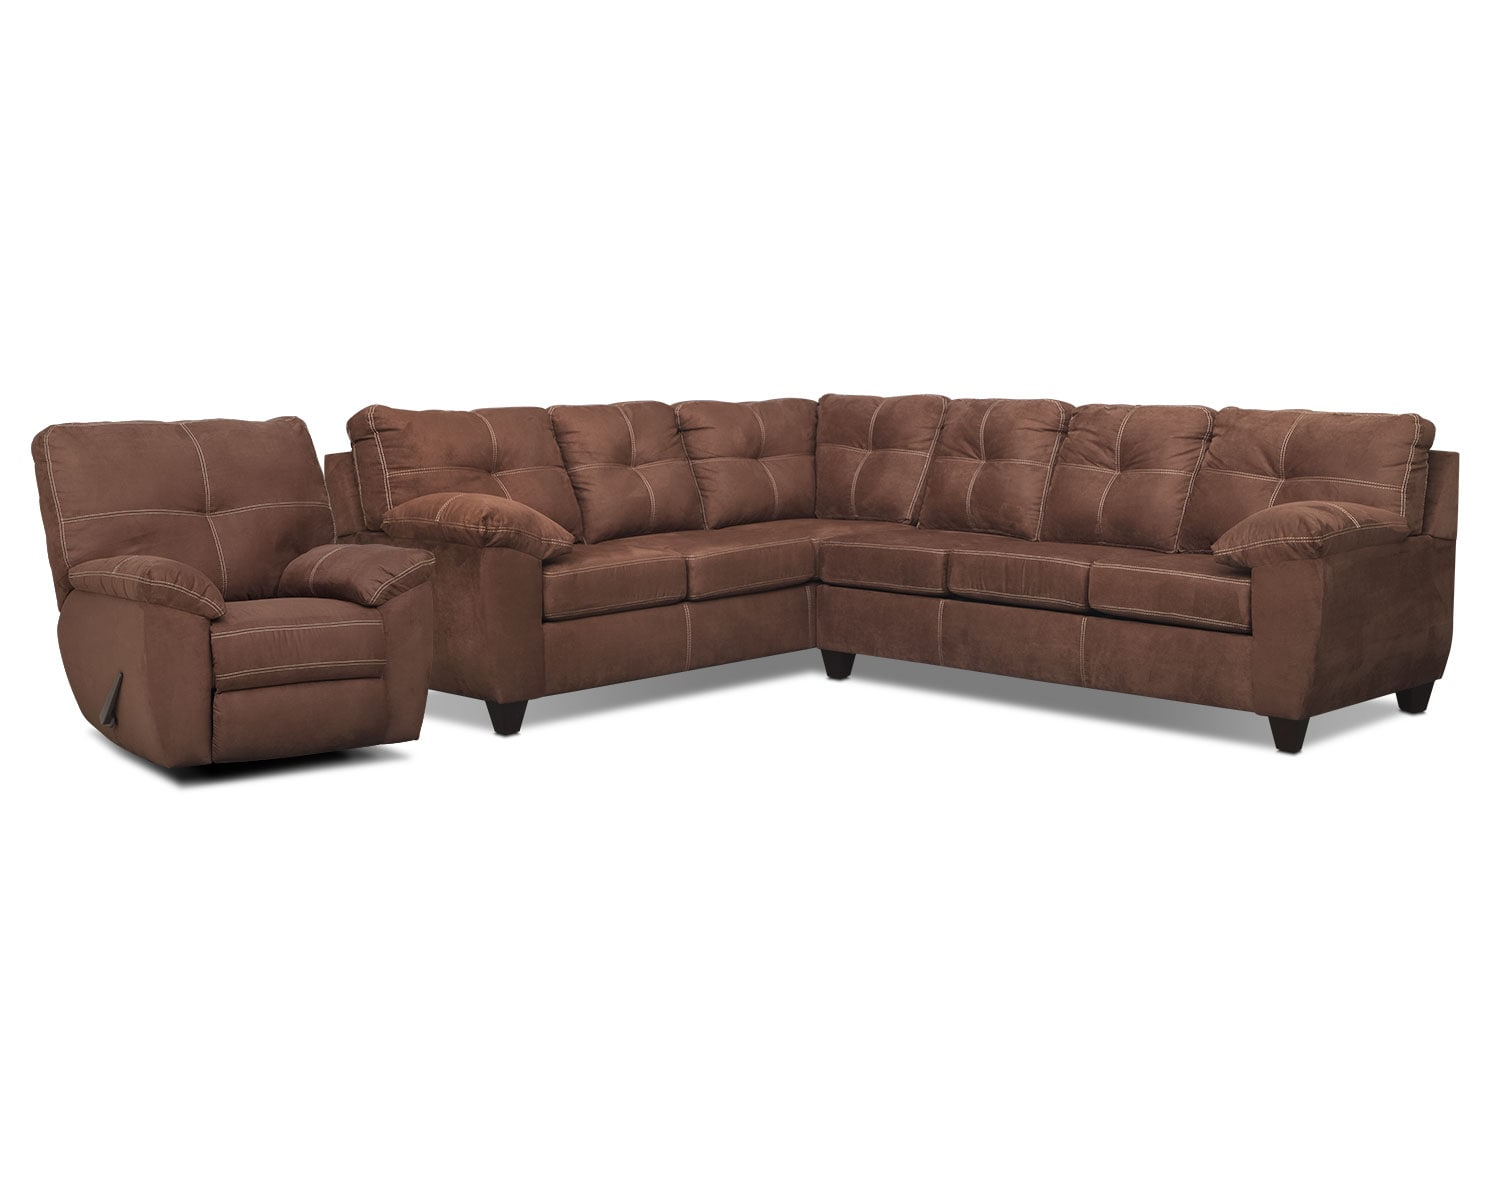 The Rialto Coffee Sectional Collection